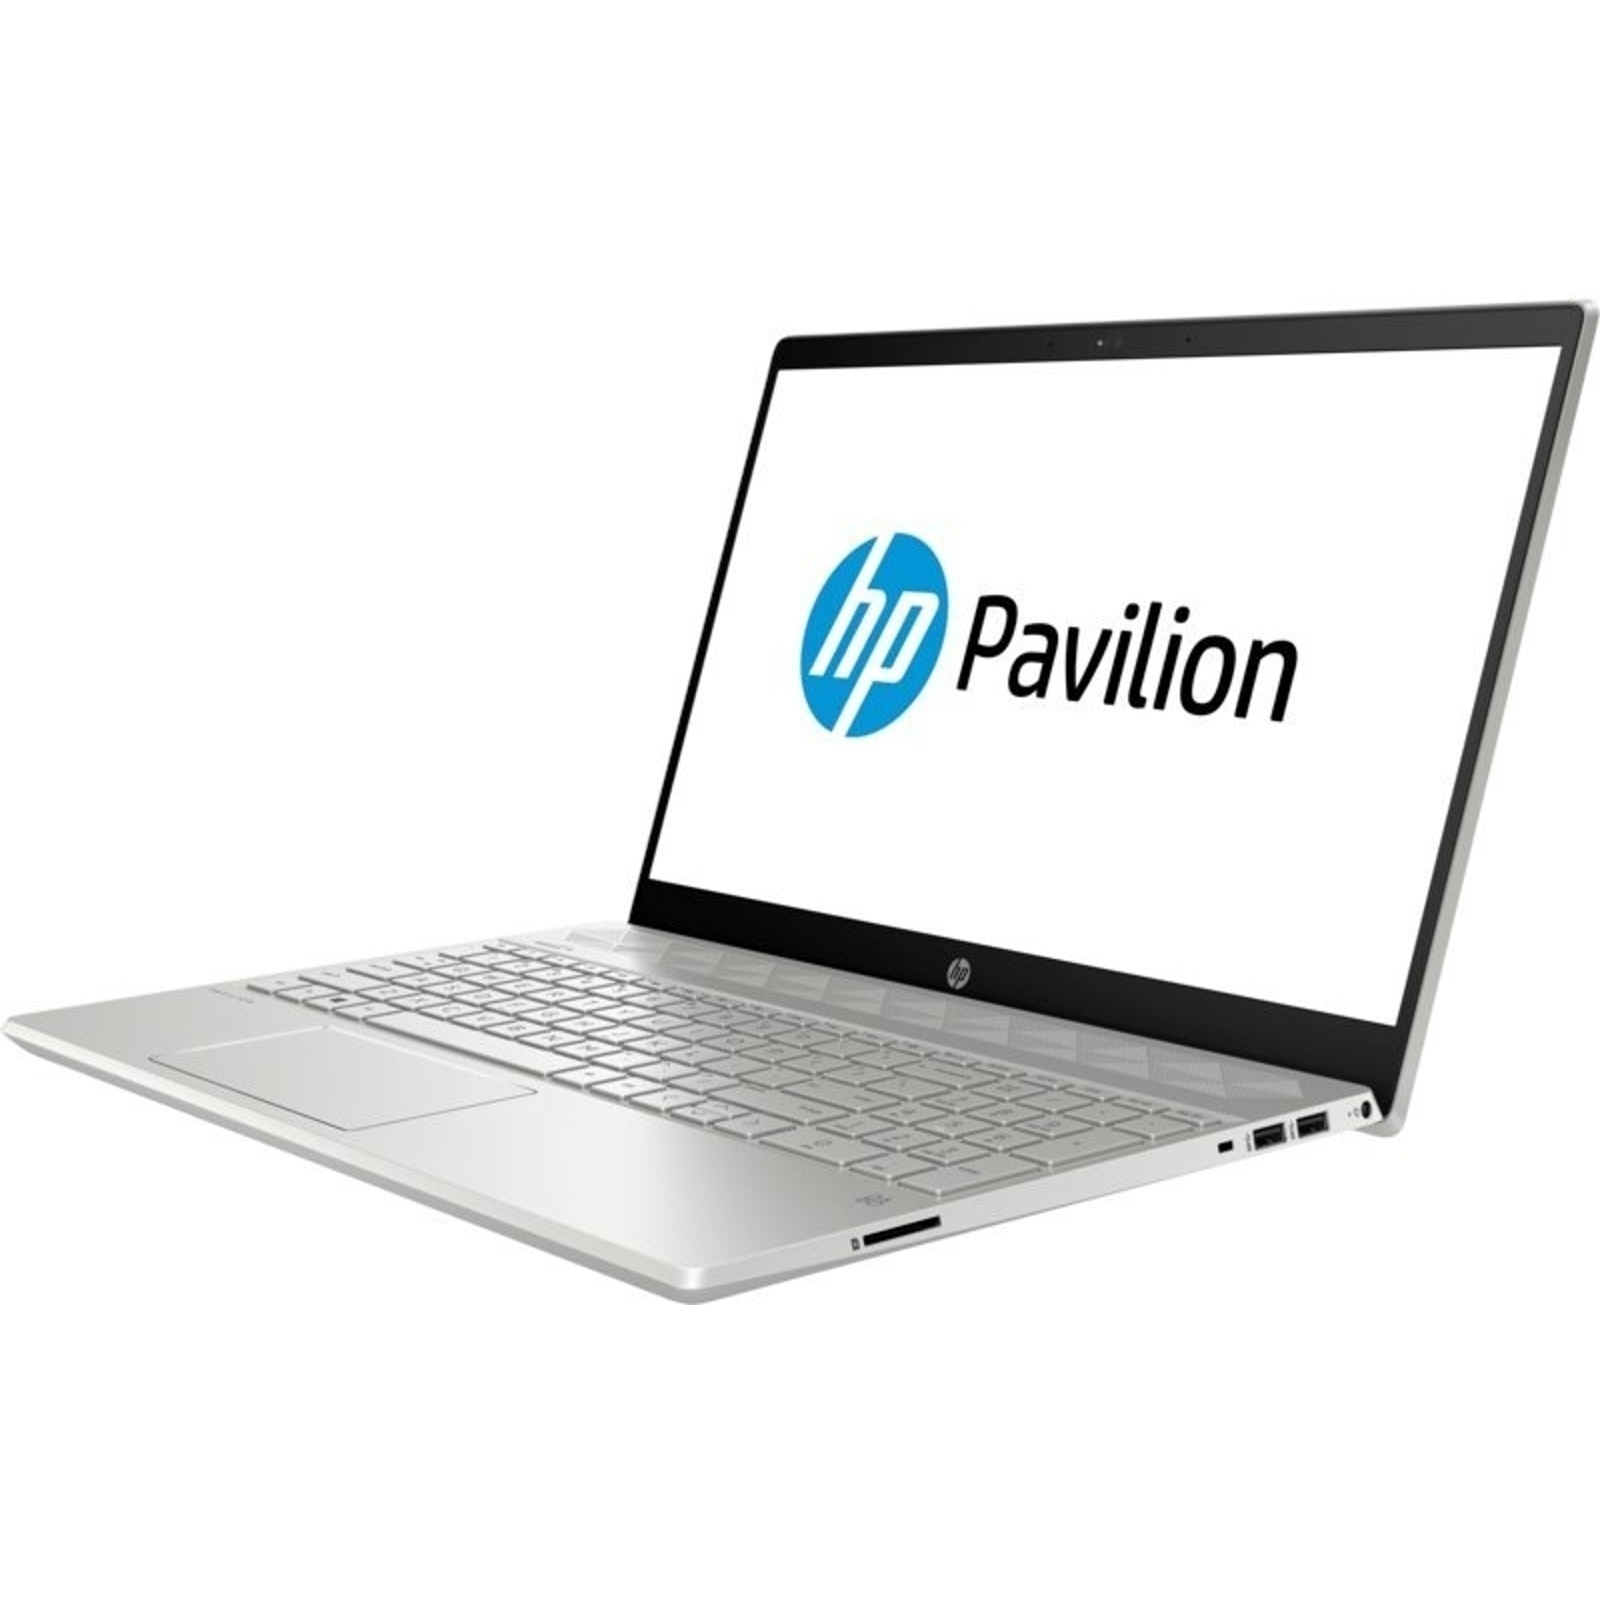 "HP 15-CS1004NT 5WA43EA I7-8565U 16GB 512GB SSD 4GB MX150 15.6"" FHD FREEDOS NOTEBOOK"